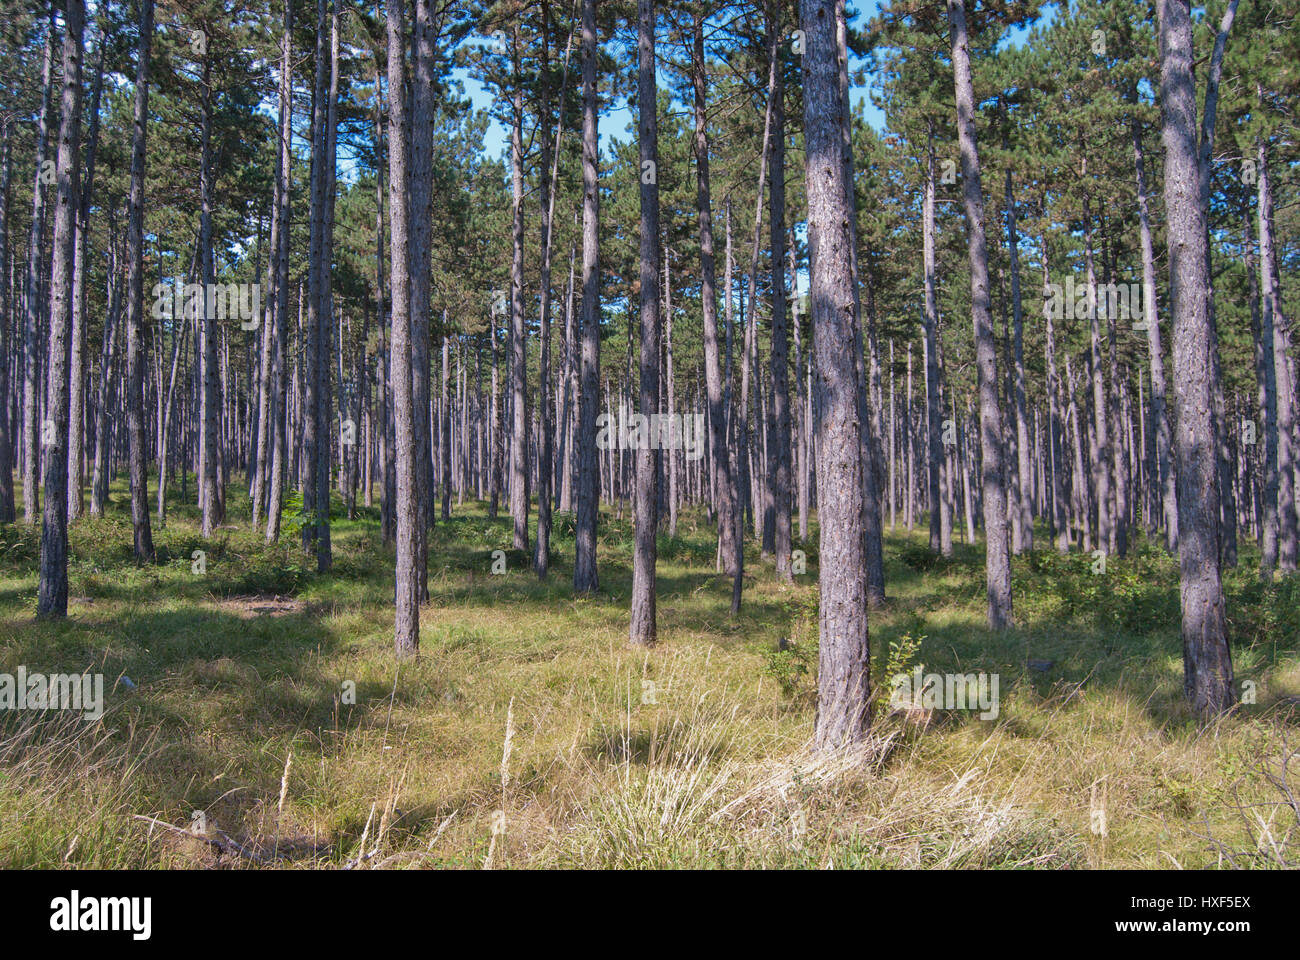 Austrian pine (Pinus nigra) forest monoculture, providing timber and non-timber forest products as resin. - Stock Image